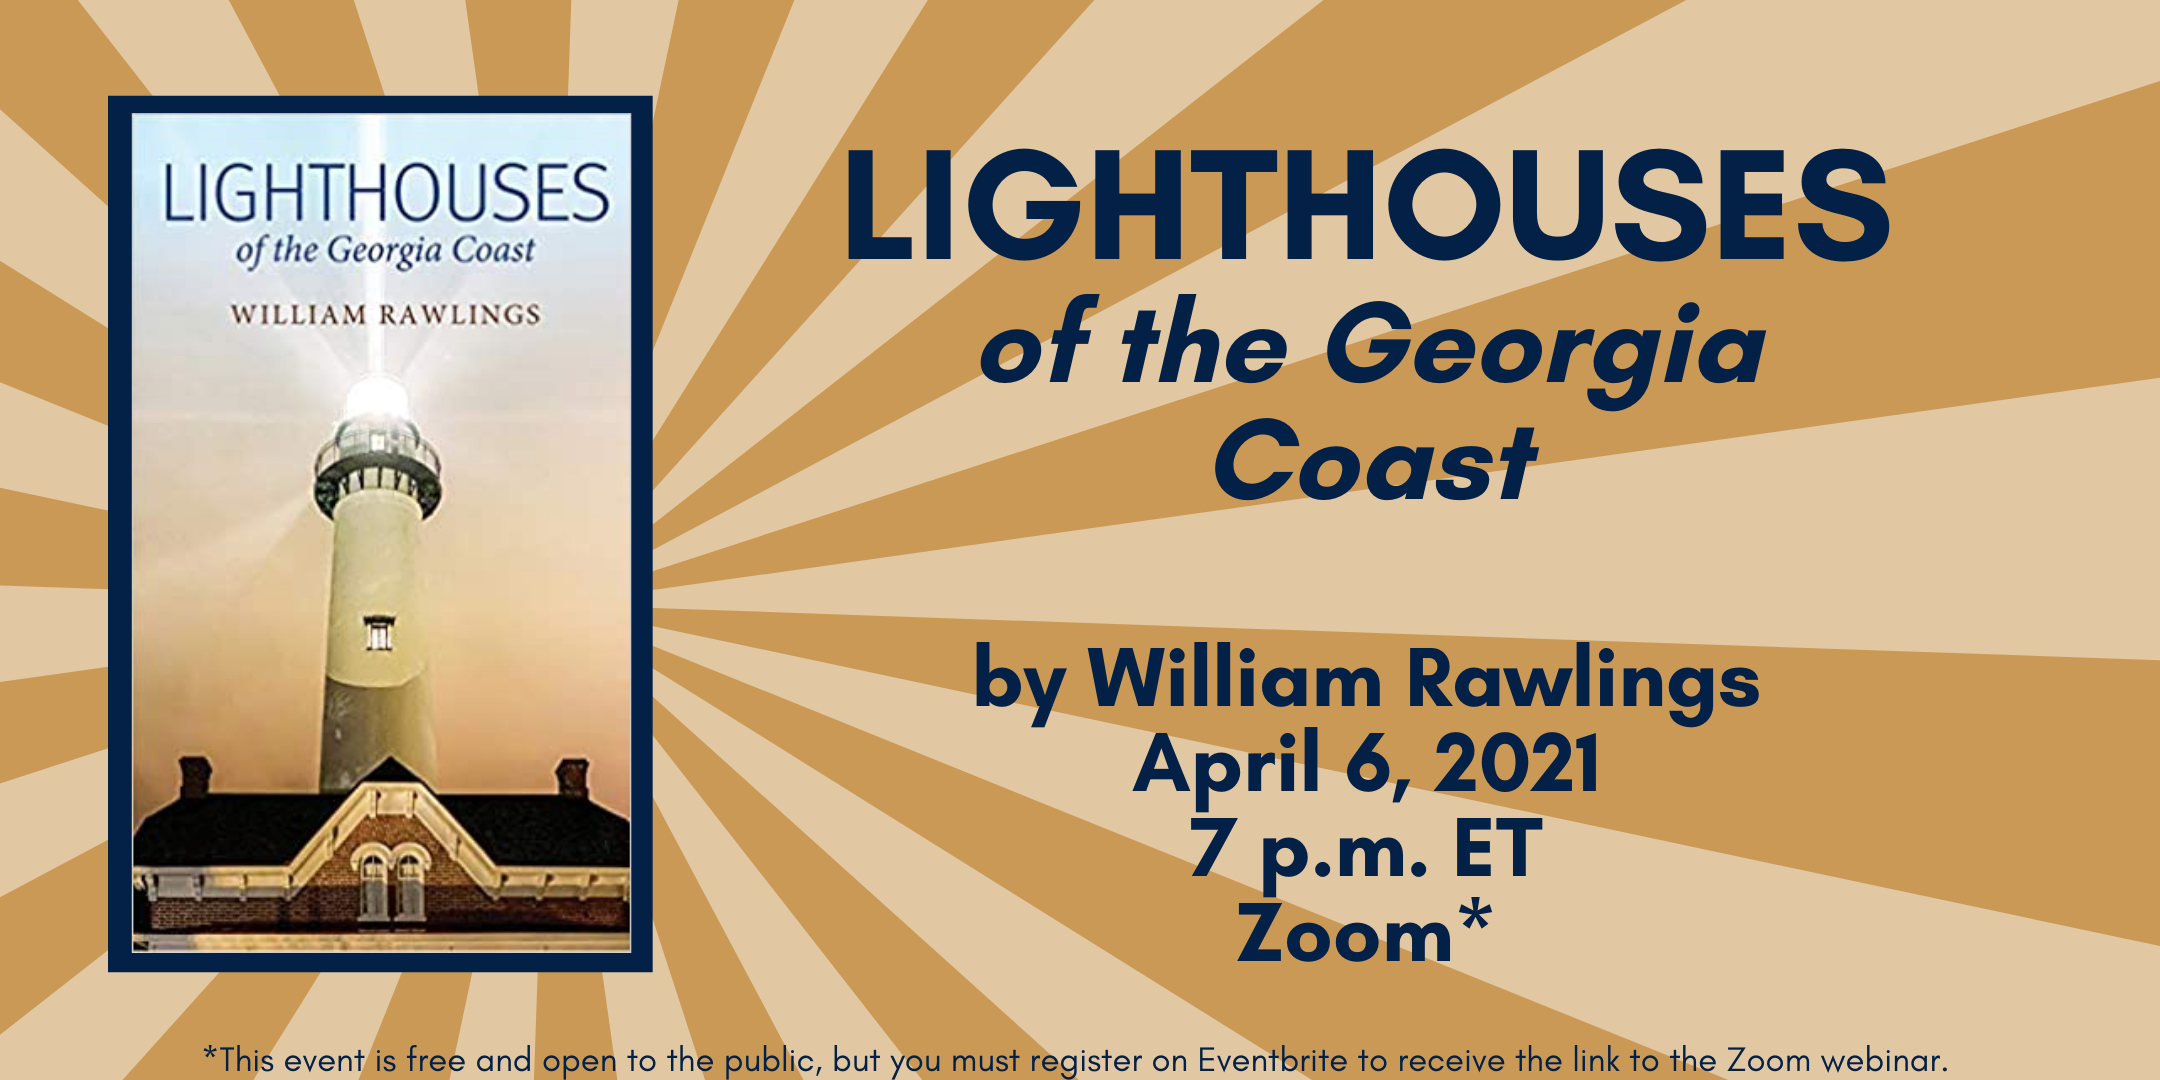 William Rawlings presents LIGHTHOUSES OF THE GEORGIA COAST